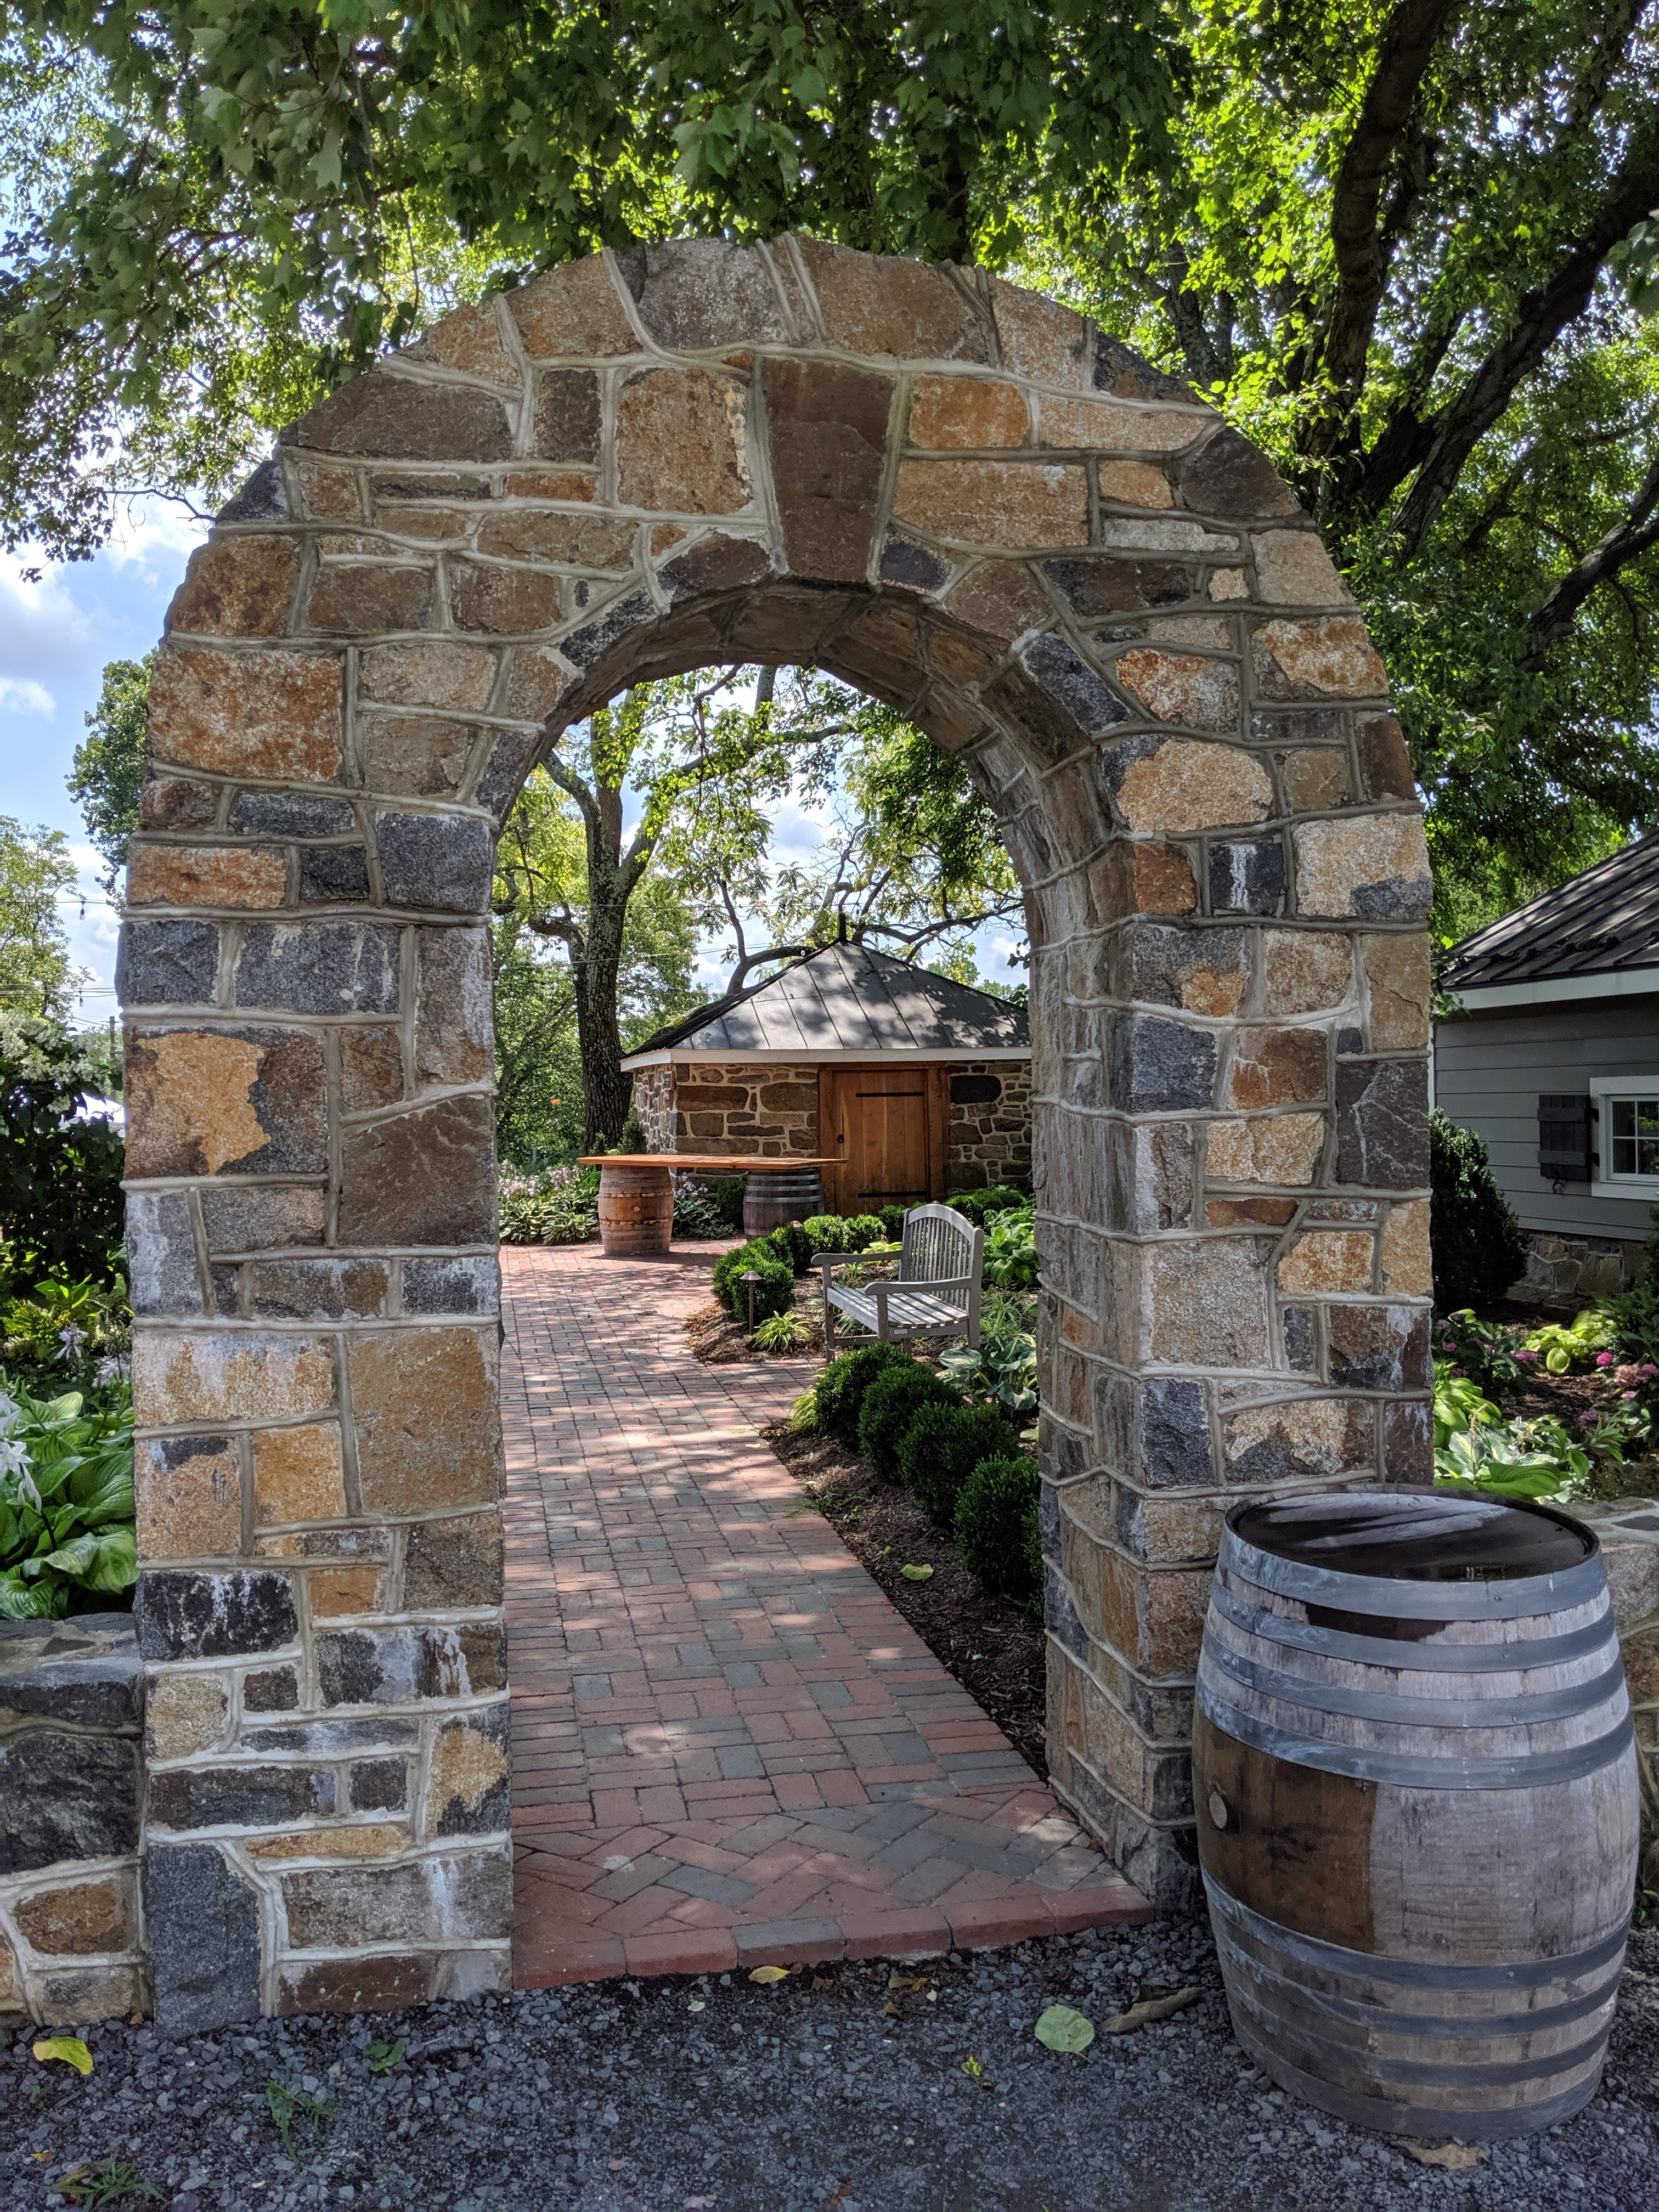 hardscaping can define areas of your backyard landscape